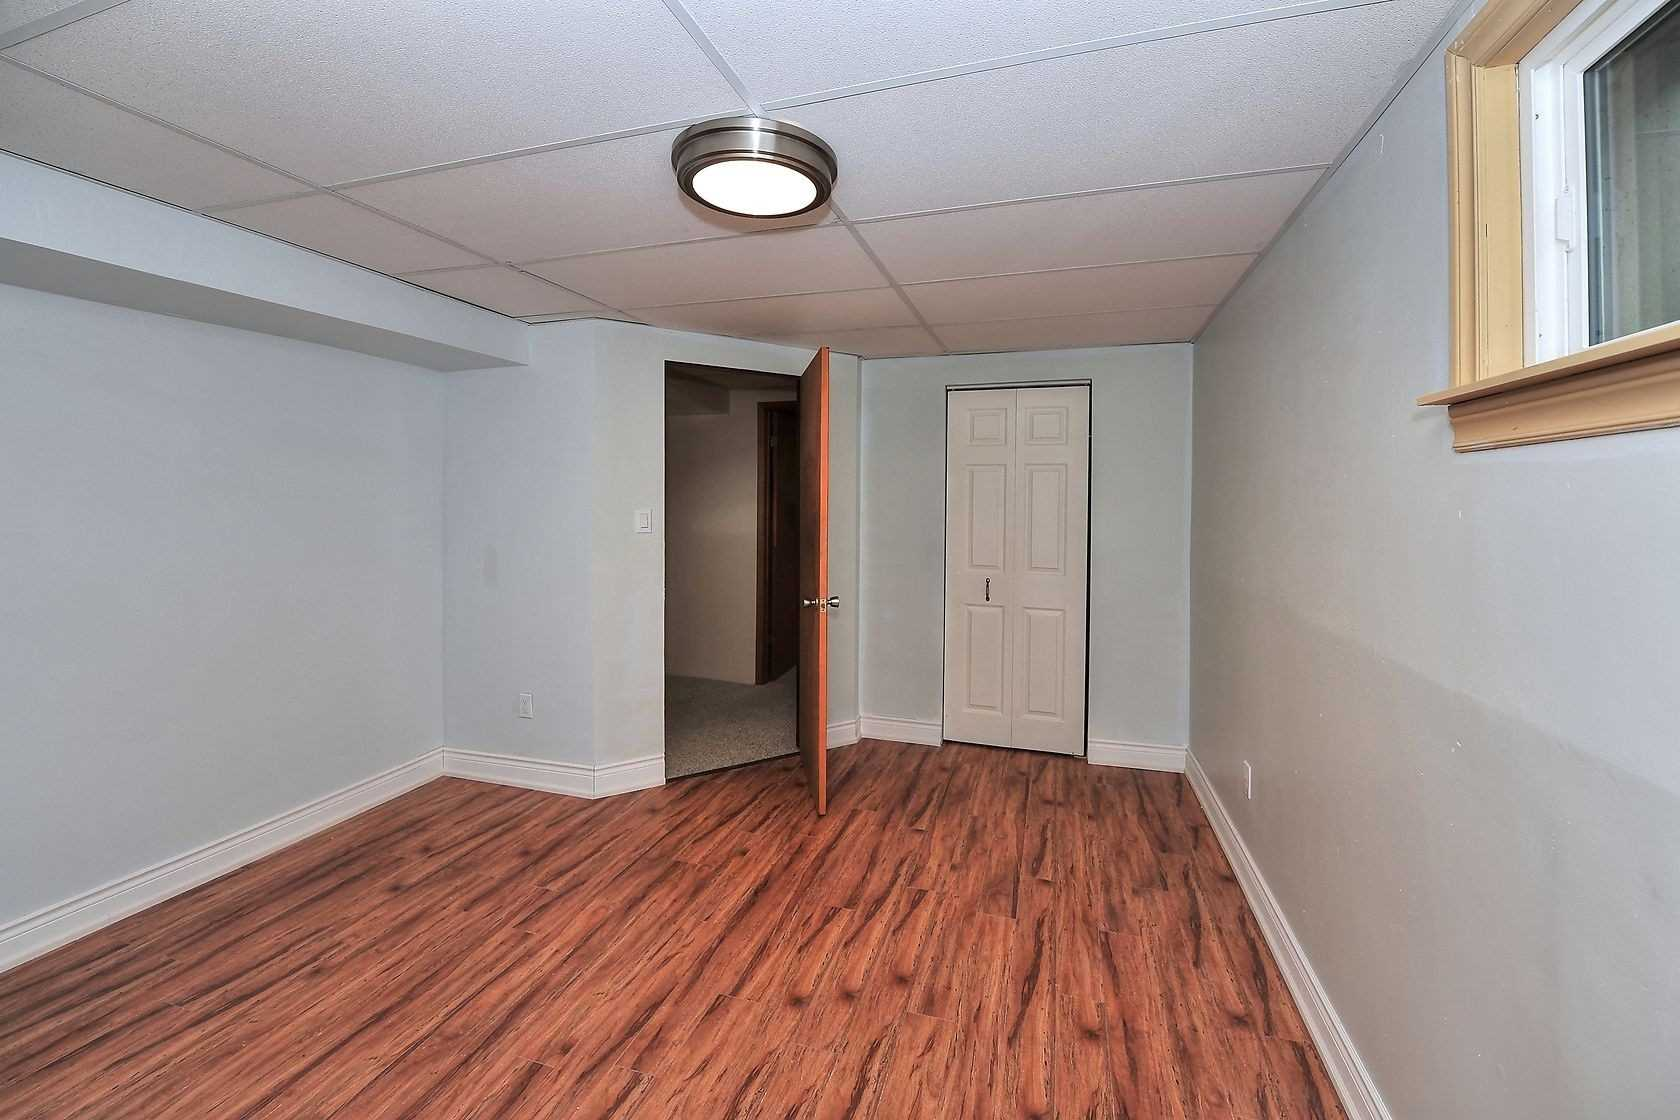 Detached house For Lease In Aurora - 62 Golf Links Dr, Aurora, Ontario, Canada L4G 3V3 , 2 Bedrooms Bedrooms, ,1 BathroomBathrooms,Detached,For Lease,#bsmt,Golf Links